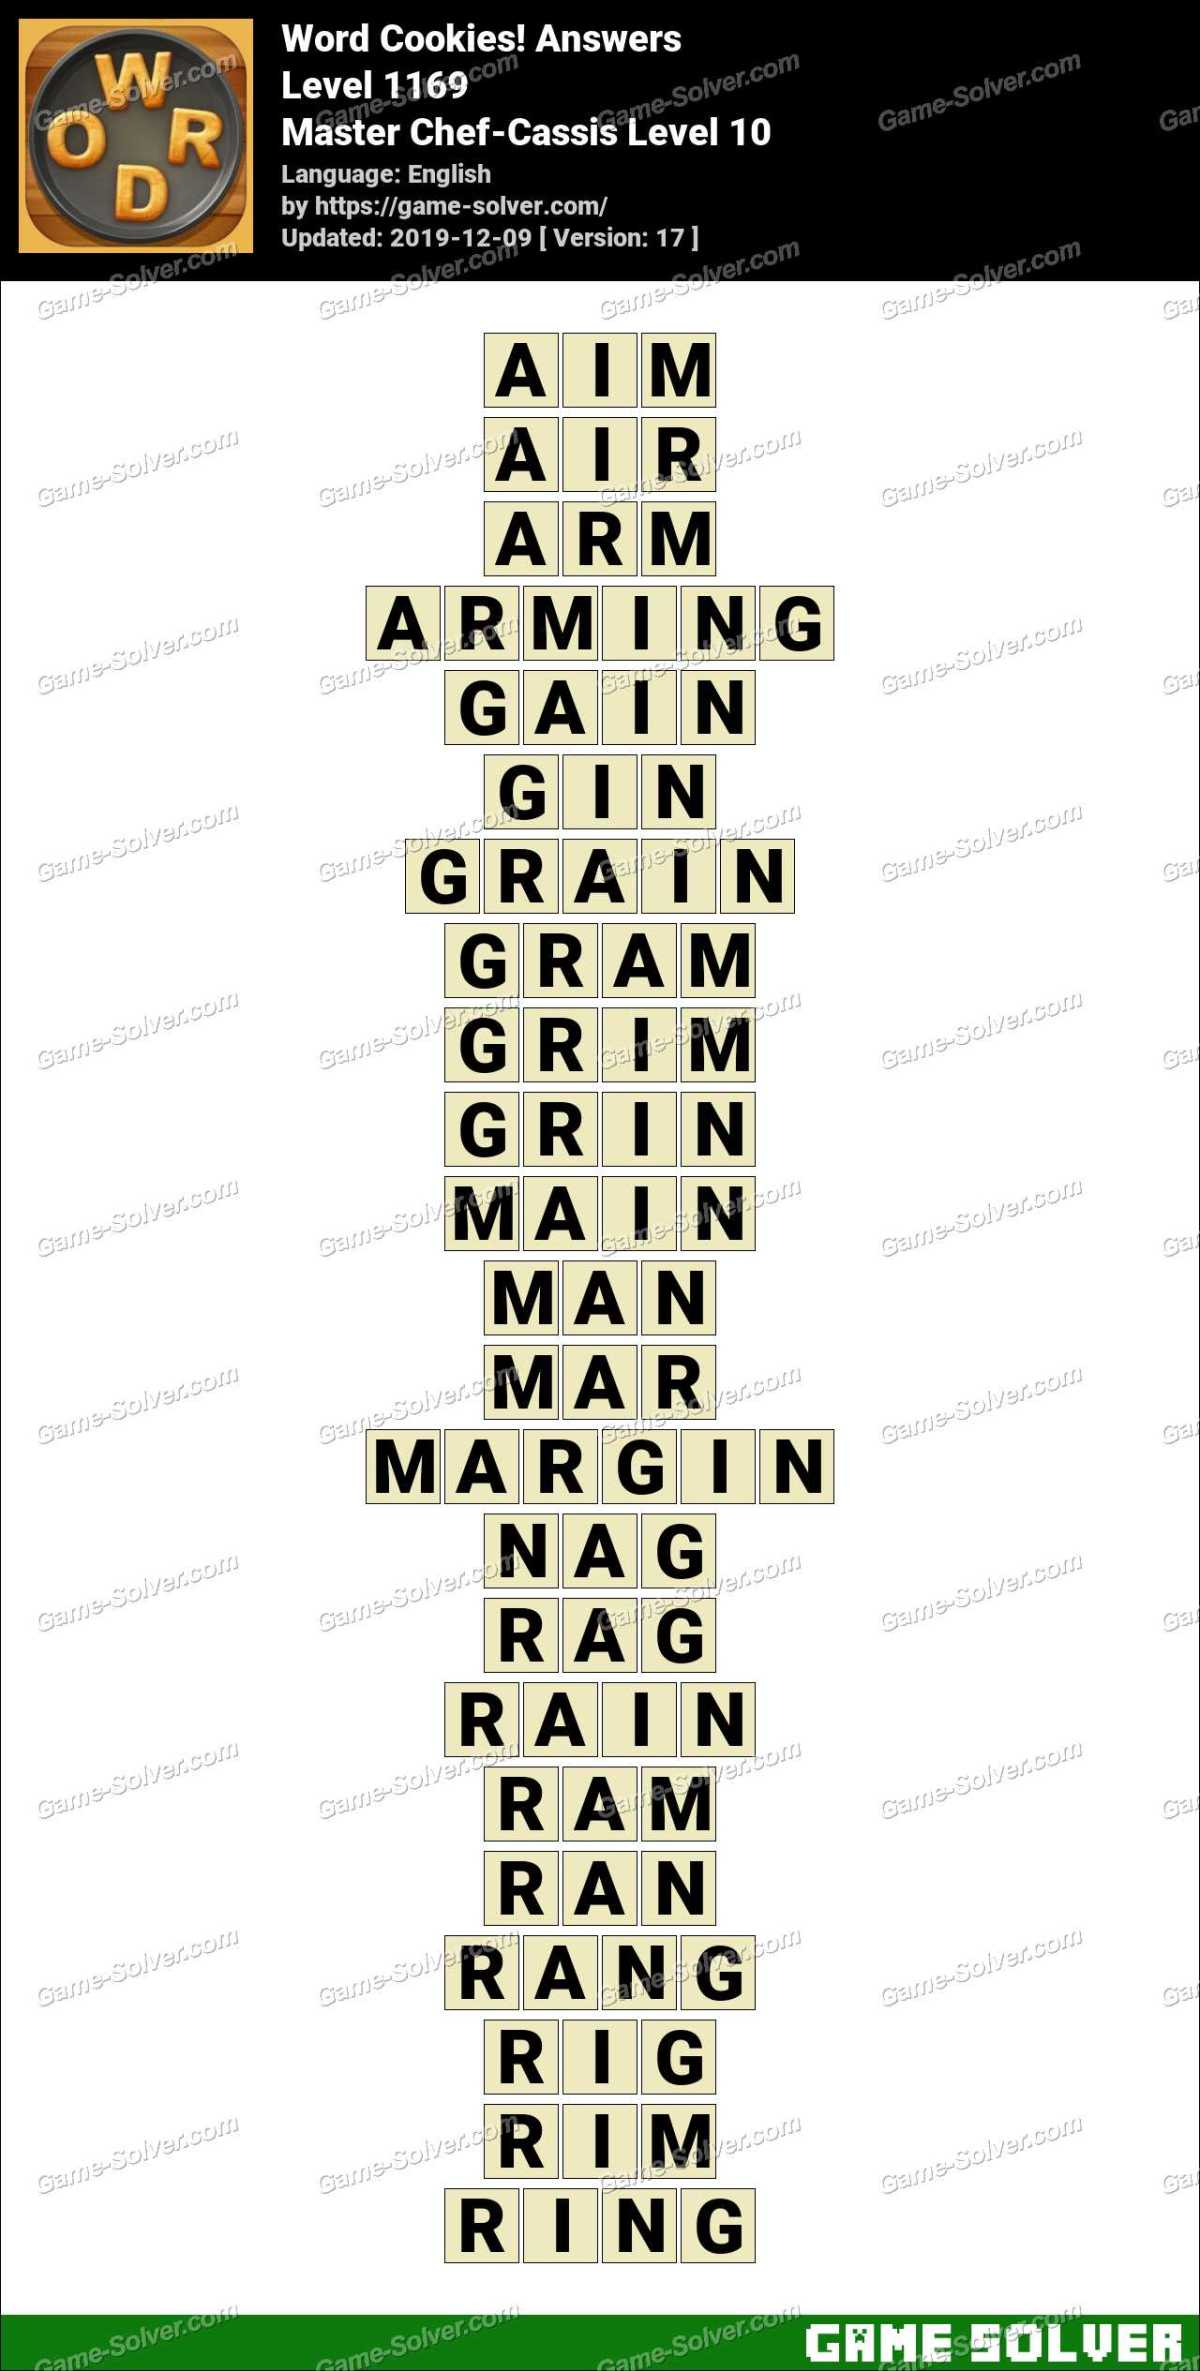 Word Cookies Master Chef-Cassis Level 10 Answers